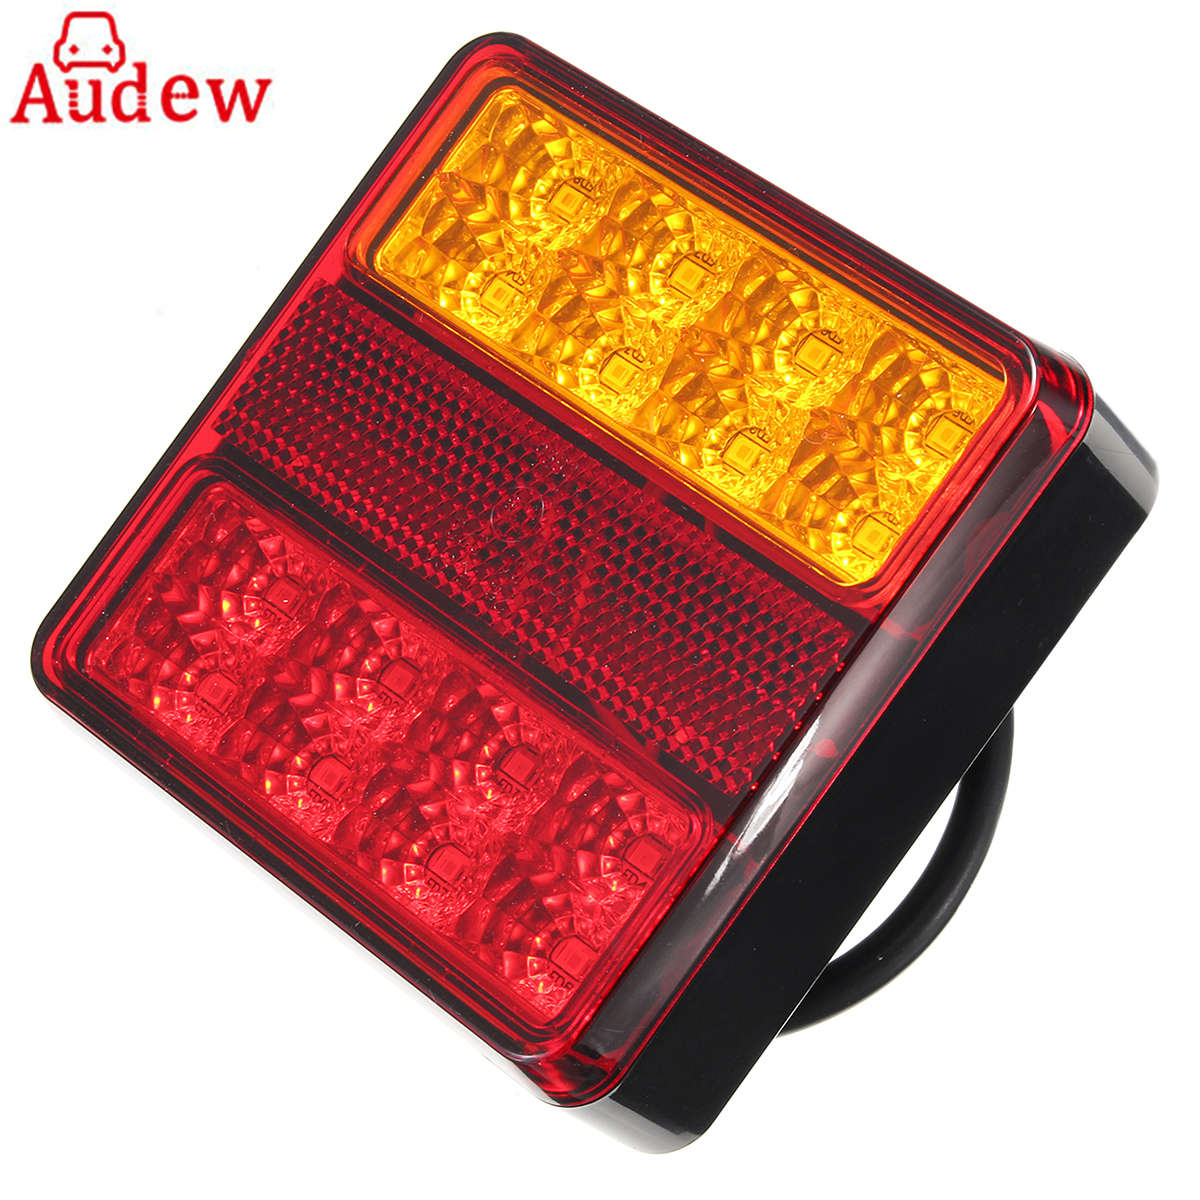 Car Truck LED Rear Warning Lights Tail Parts License Plate Lights 22LED Waterproof Rear Lamps for Trailer Truck Boat 12V maluokasa 2x 46 led car truck tail light rear lamps waterproof taillights rear turn indicator license plate lights for trailer